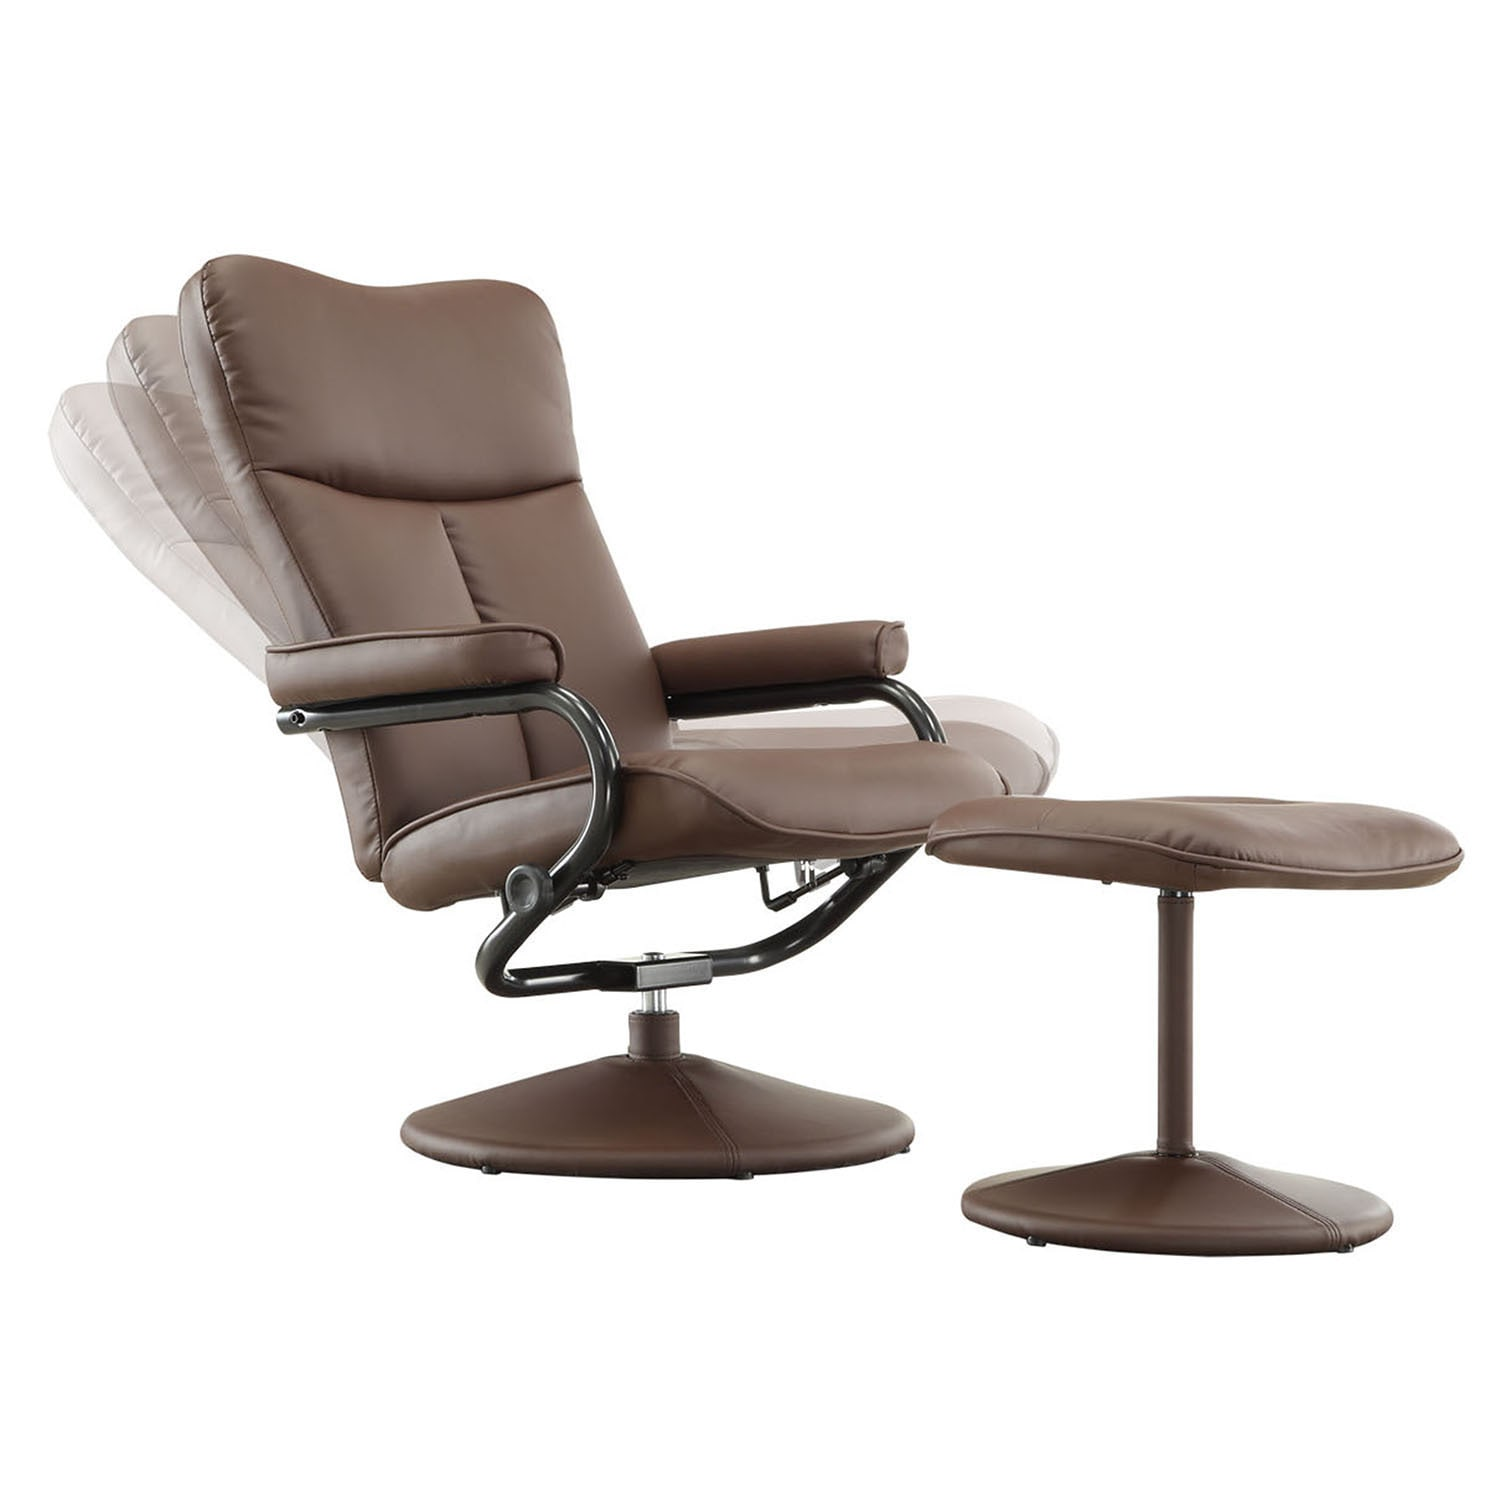 Olivia Bonded Leather Swivel Recliner Chair with Ottoman iNSPIRE Q Modern -  Free Shipping Today - Overstock.com - 16605804